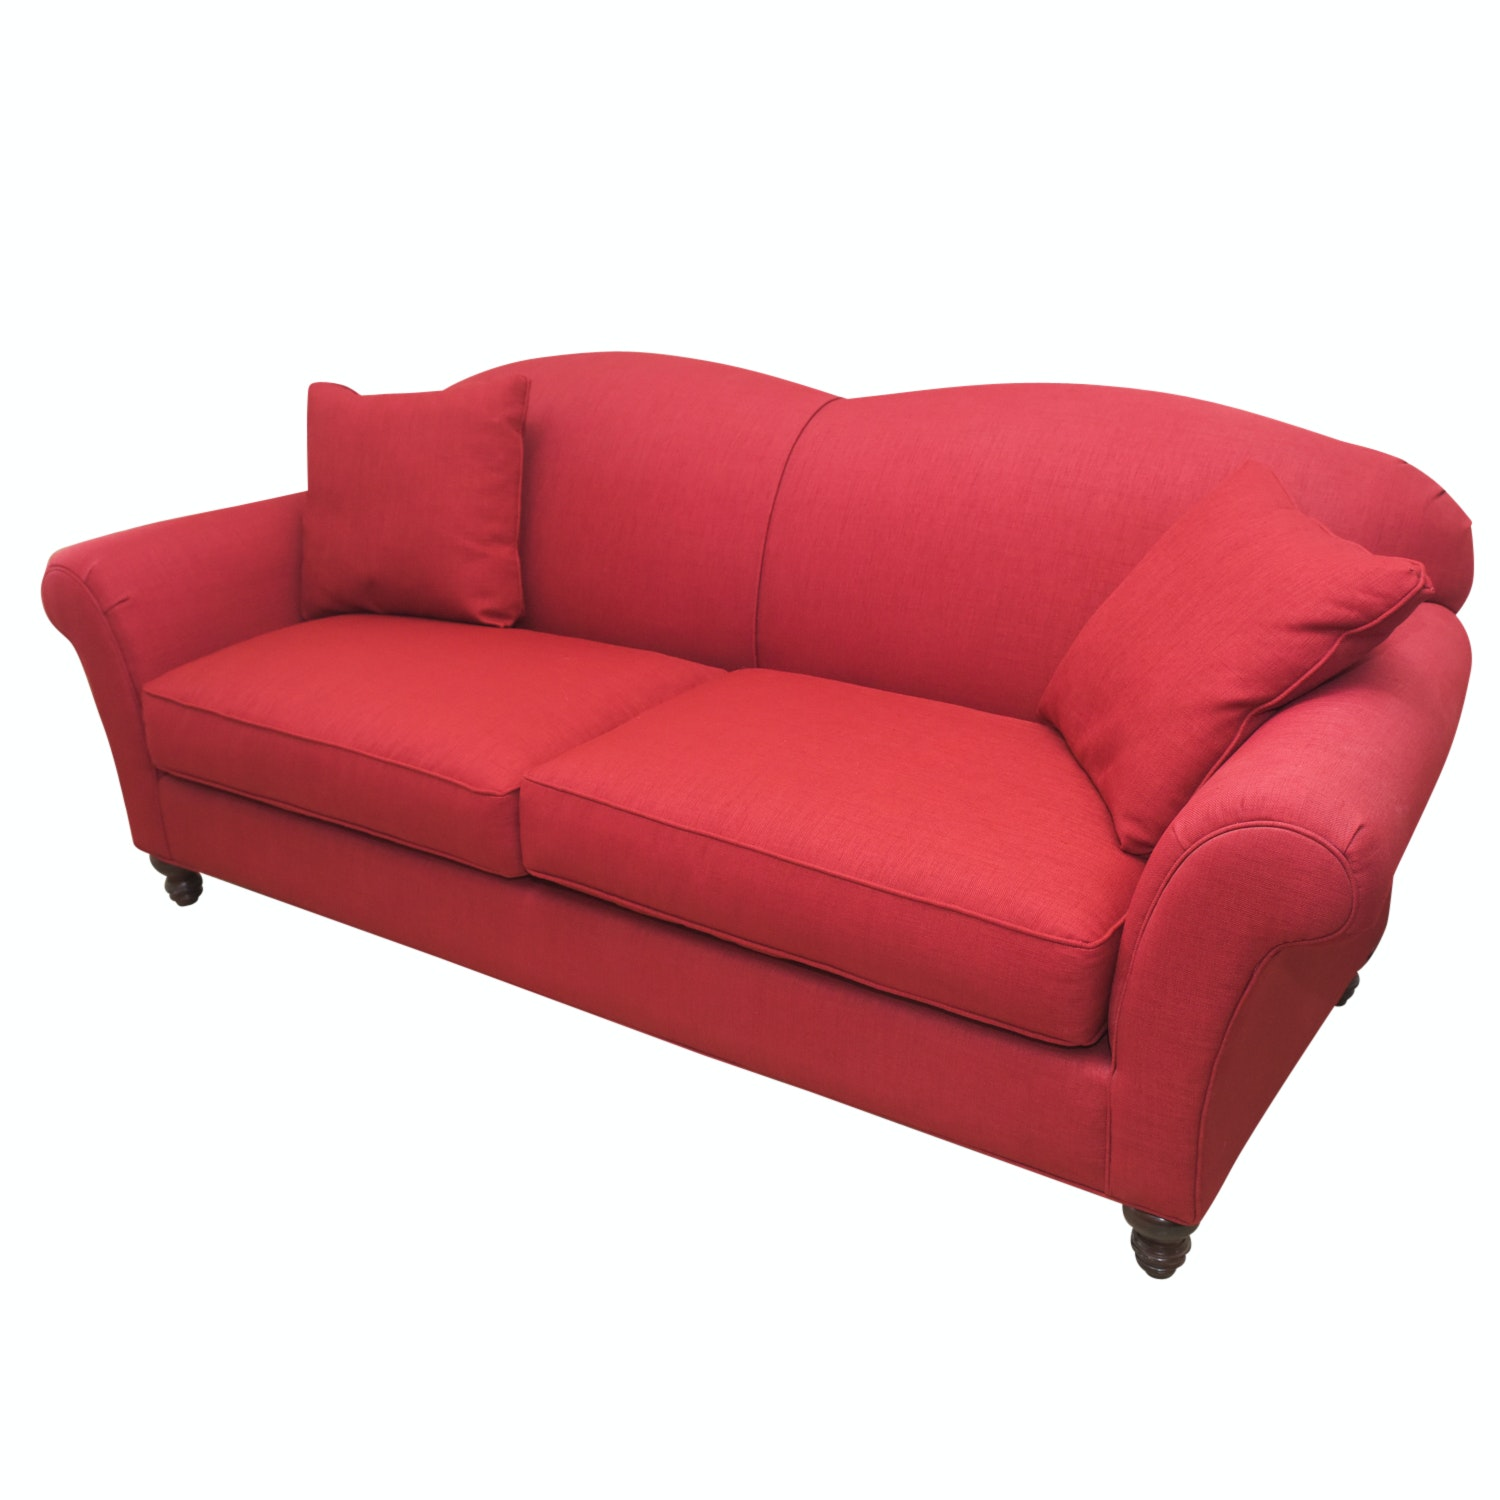 Arhaus Contemporary Red Upholstered Sofa